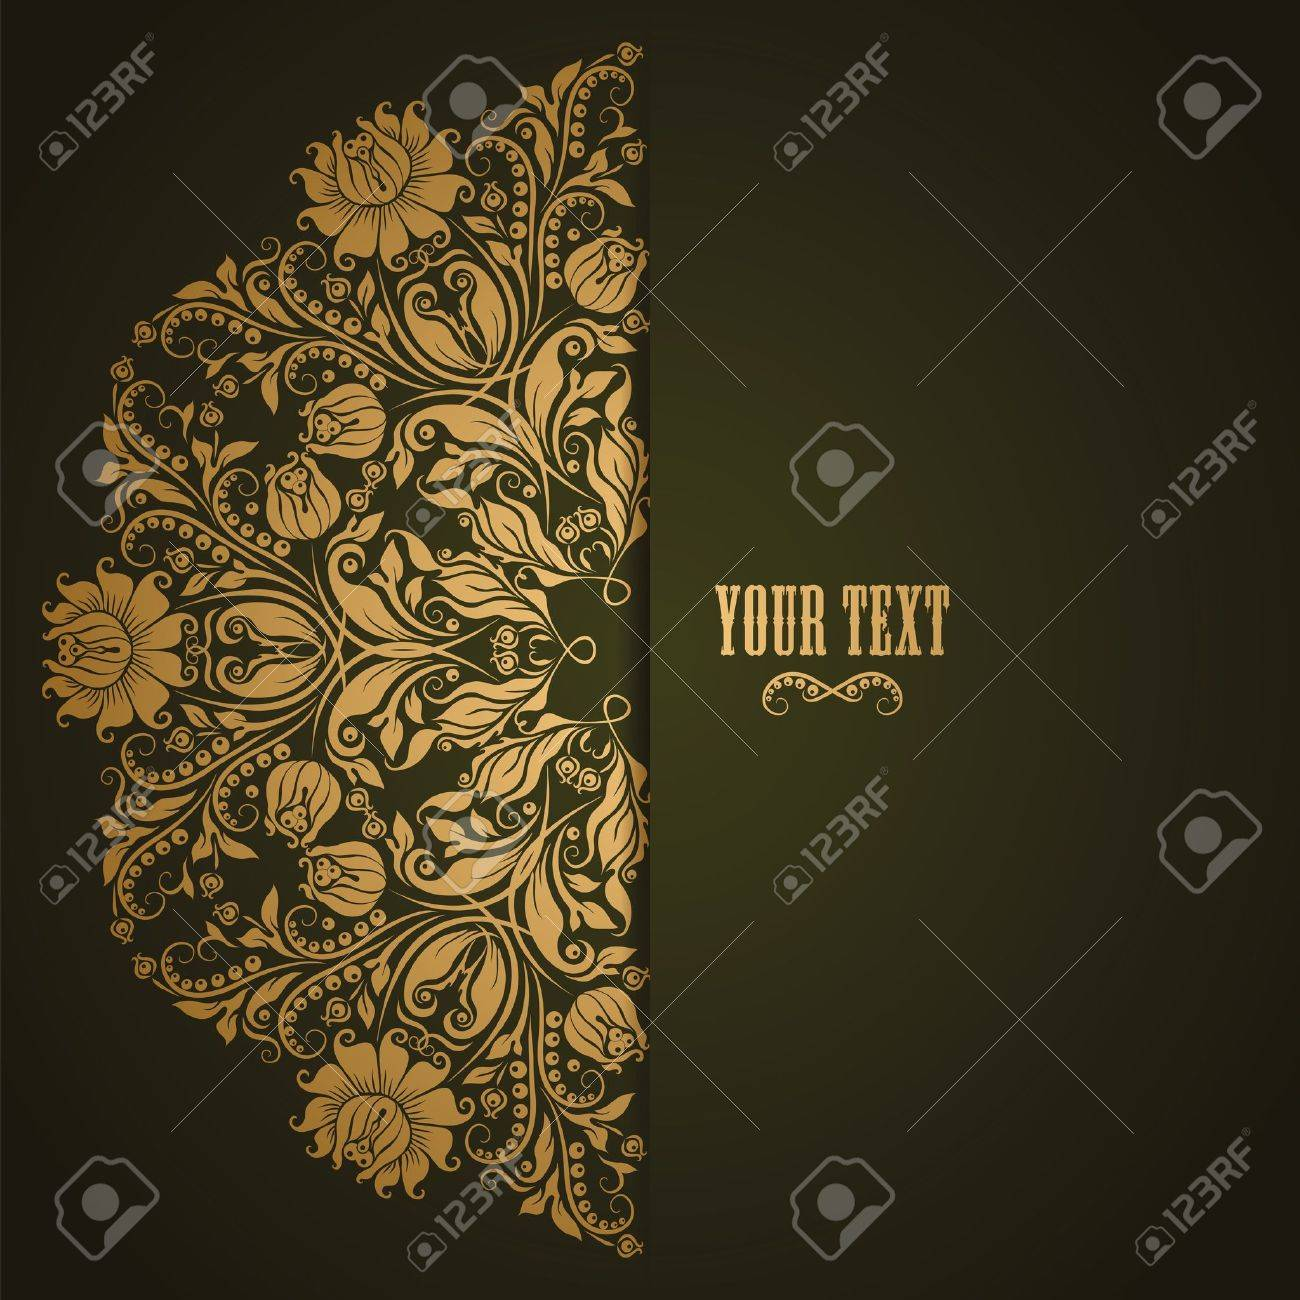 Elegant background with lace ornament and place for text. Floral elements, ornate background. Stock Vector - 17623673